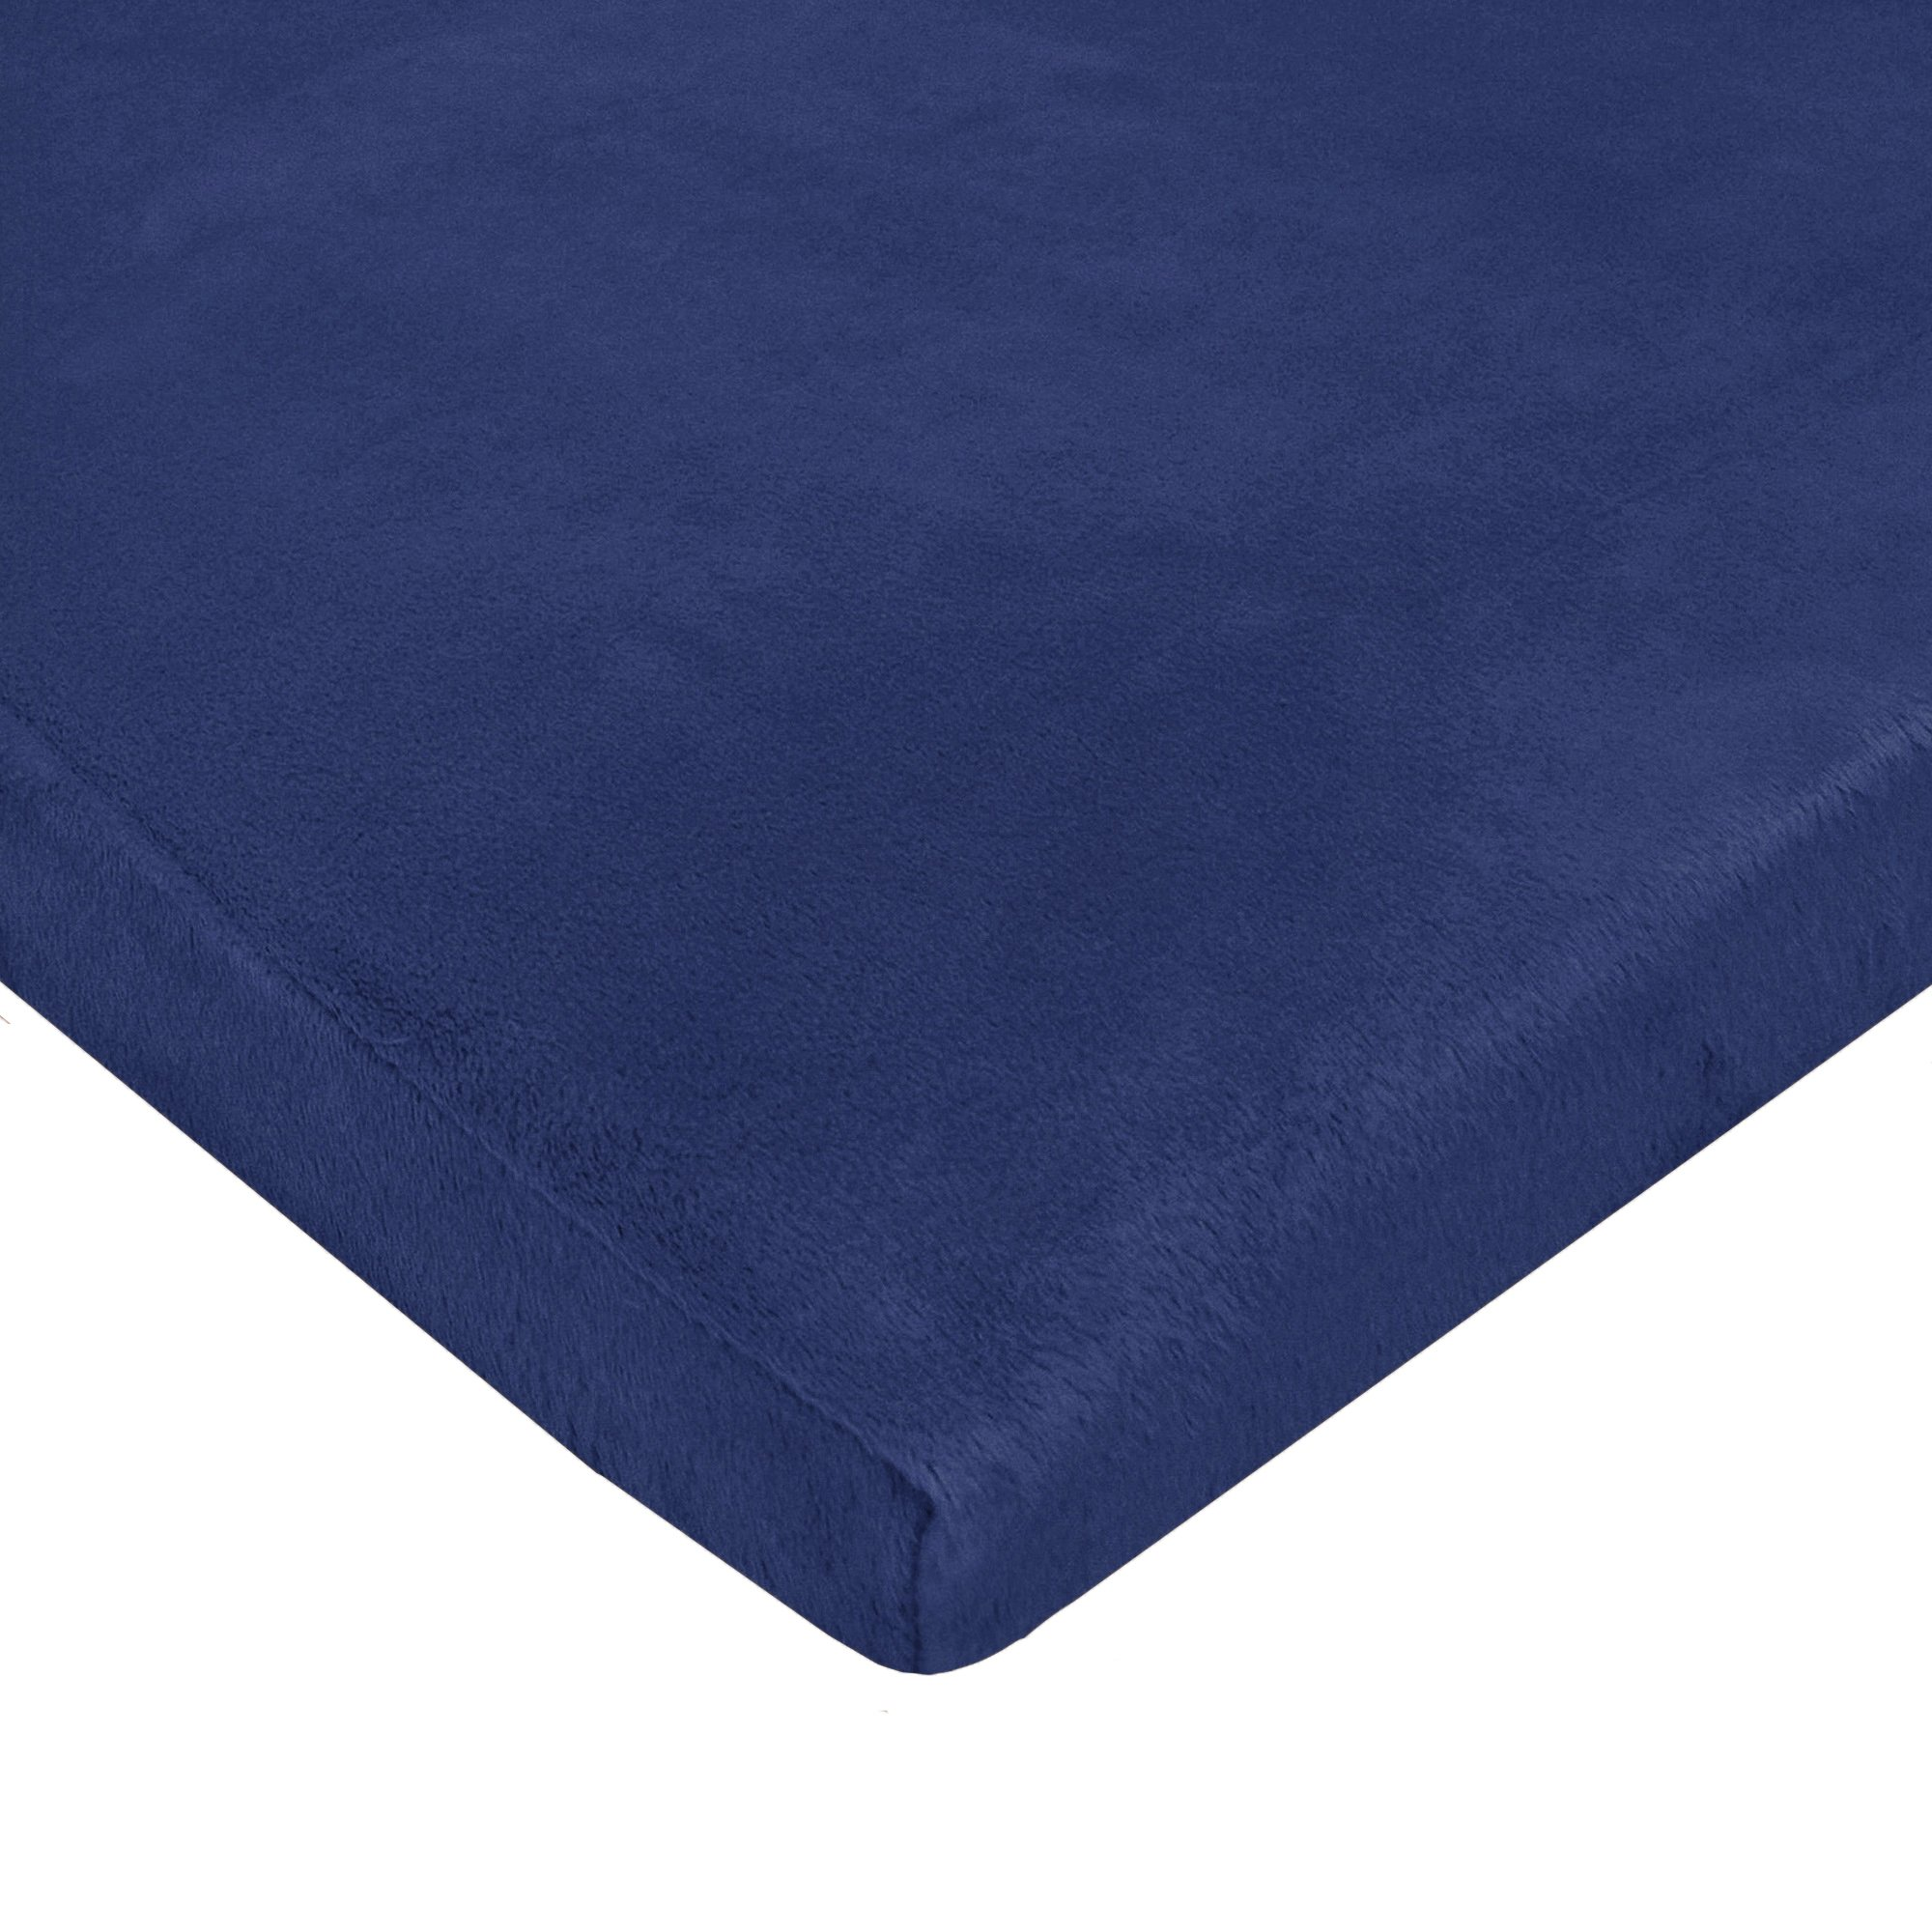 American Baby Company Heavenly Soft Chenille Fitted Pack N Play Playard Sheet, Navy, 27'' x 39''